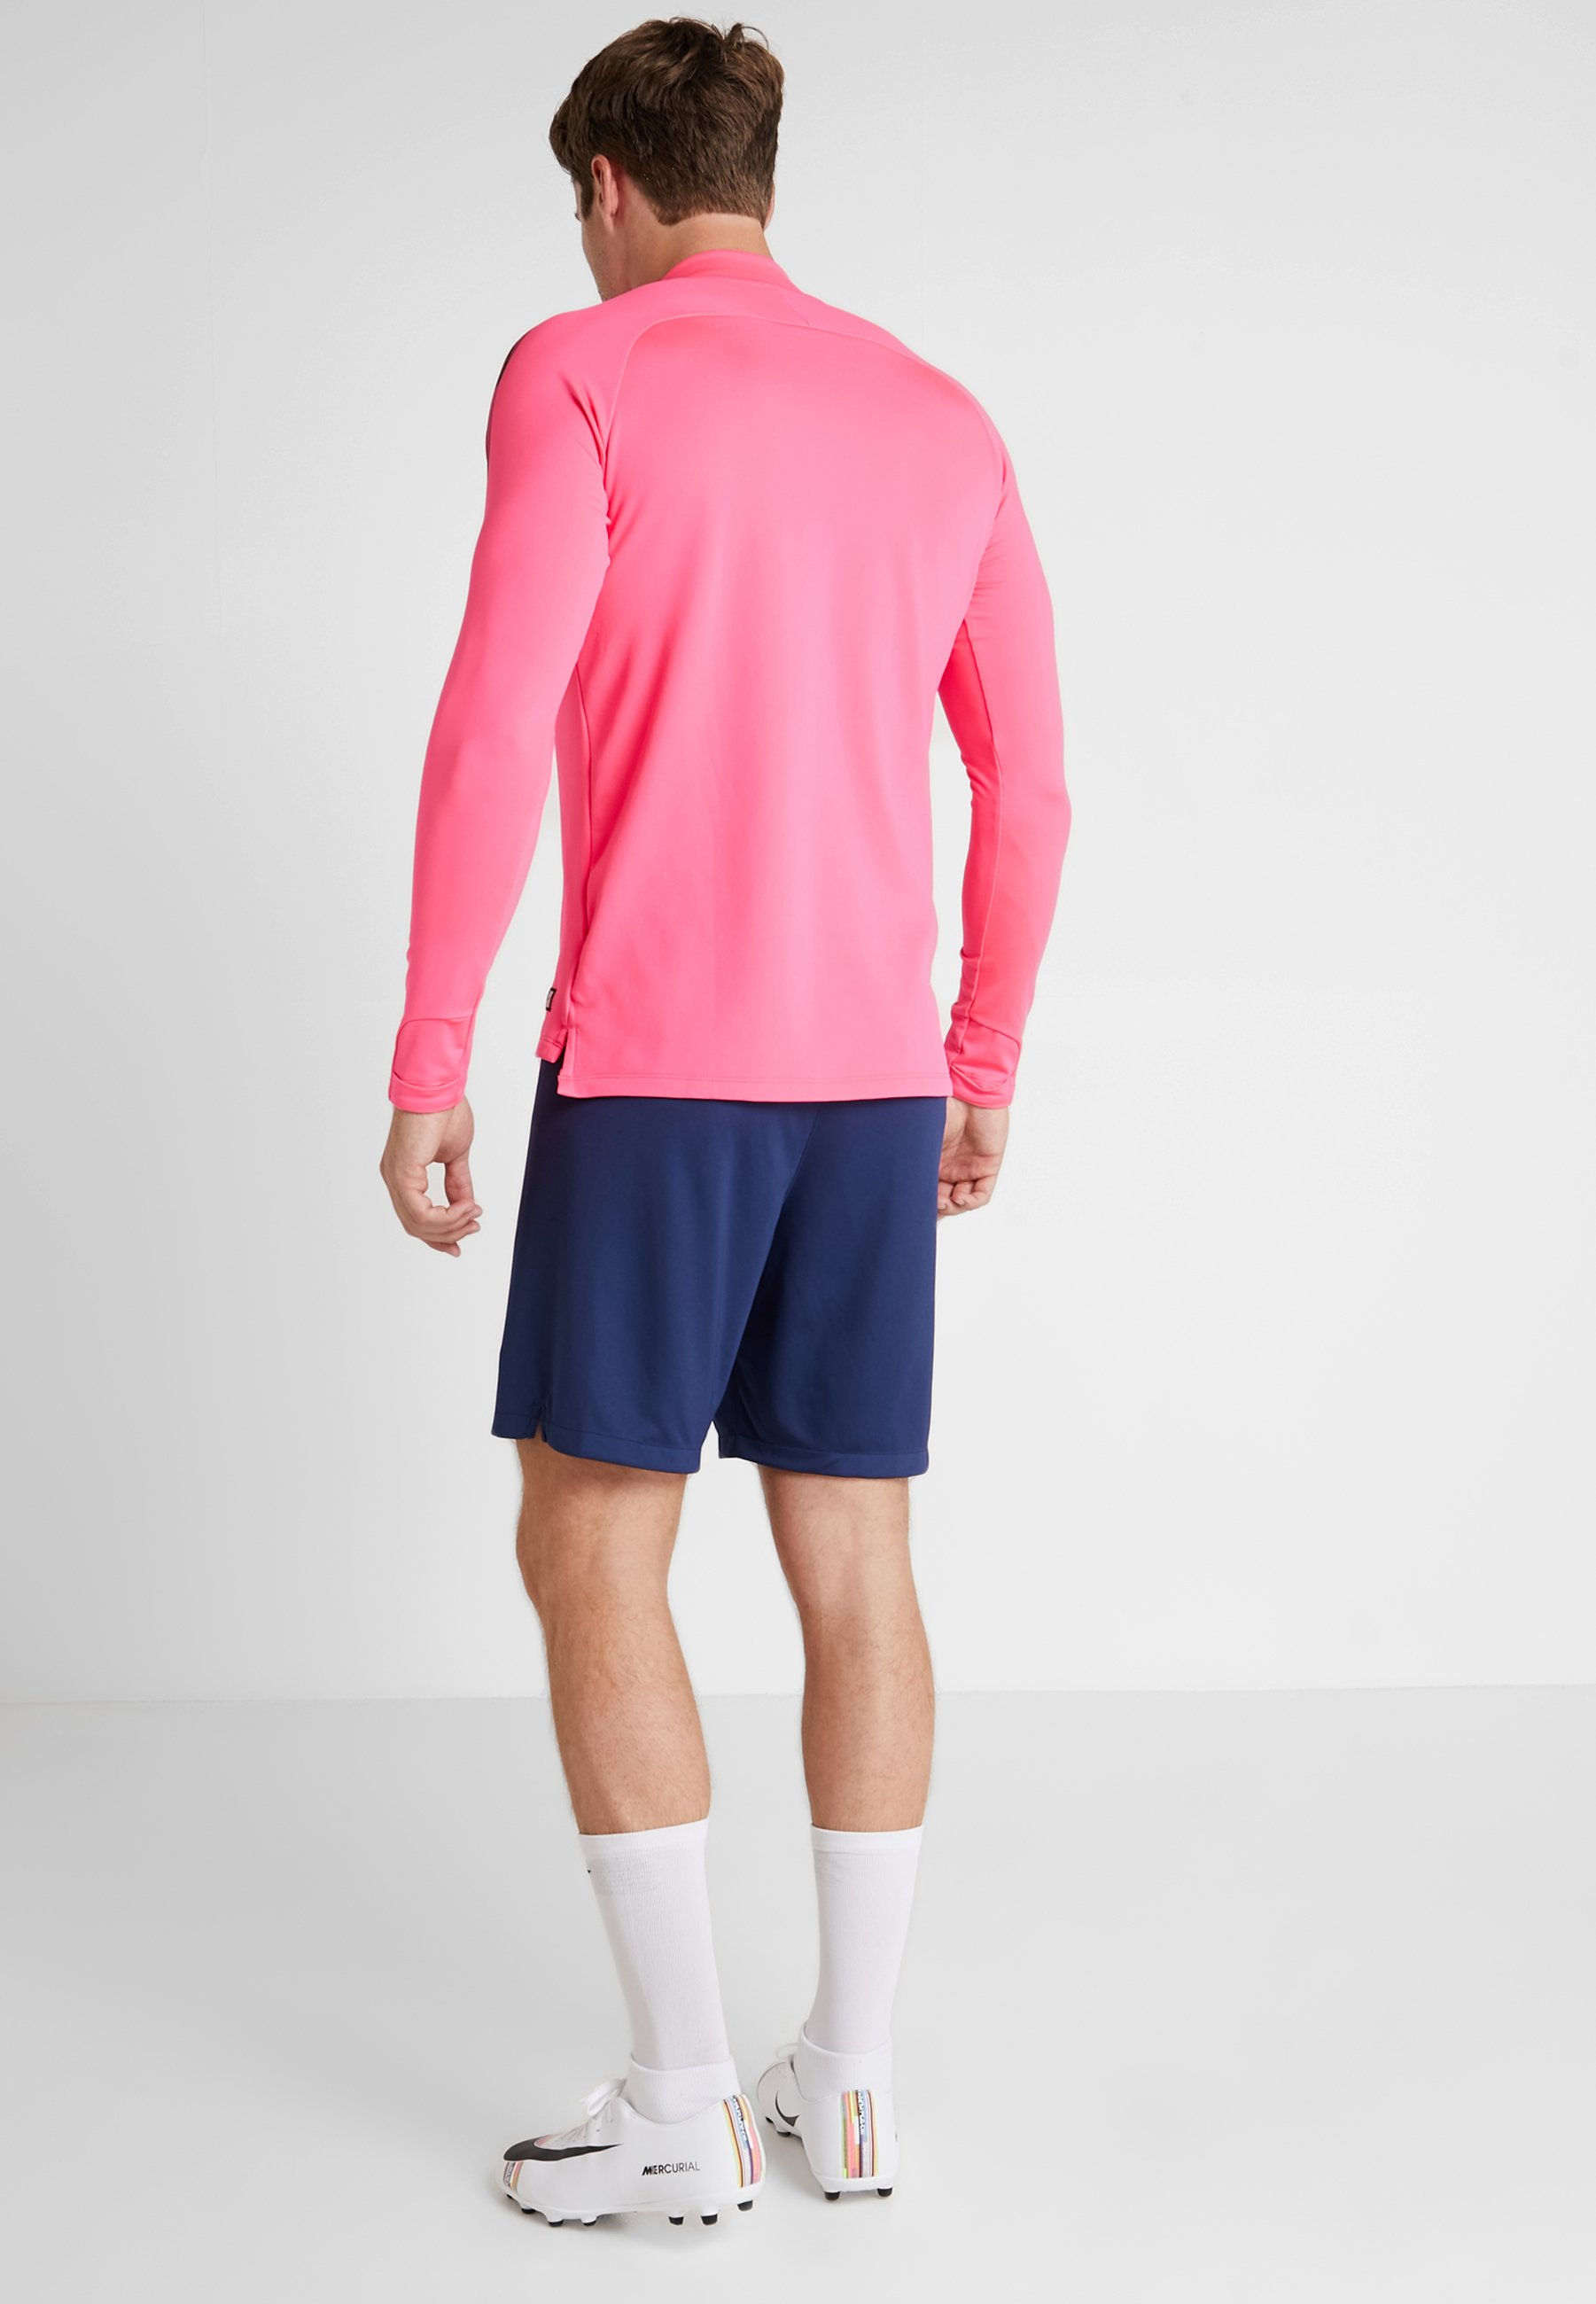 Sport StGermain white Paris ShortDe Nike Performance Navy Midnight 80OPnwXNk